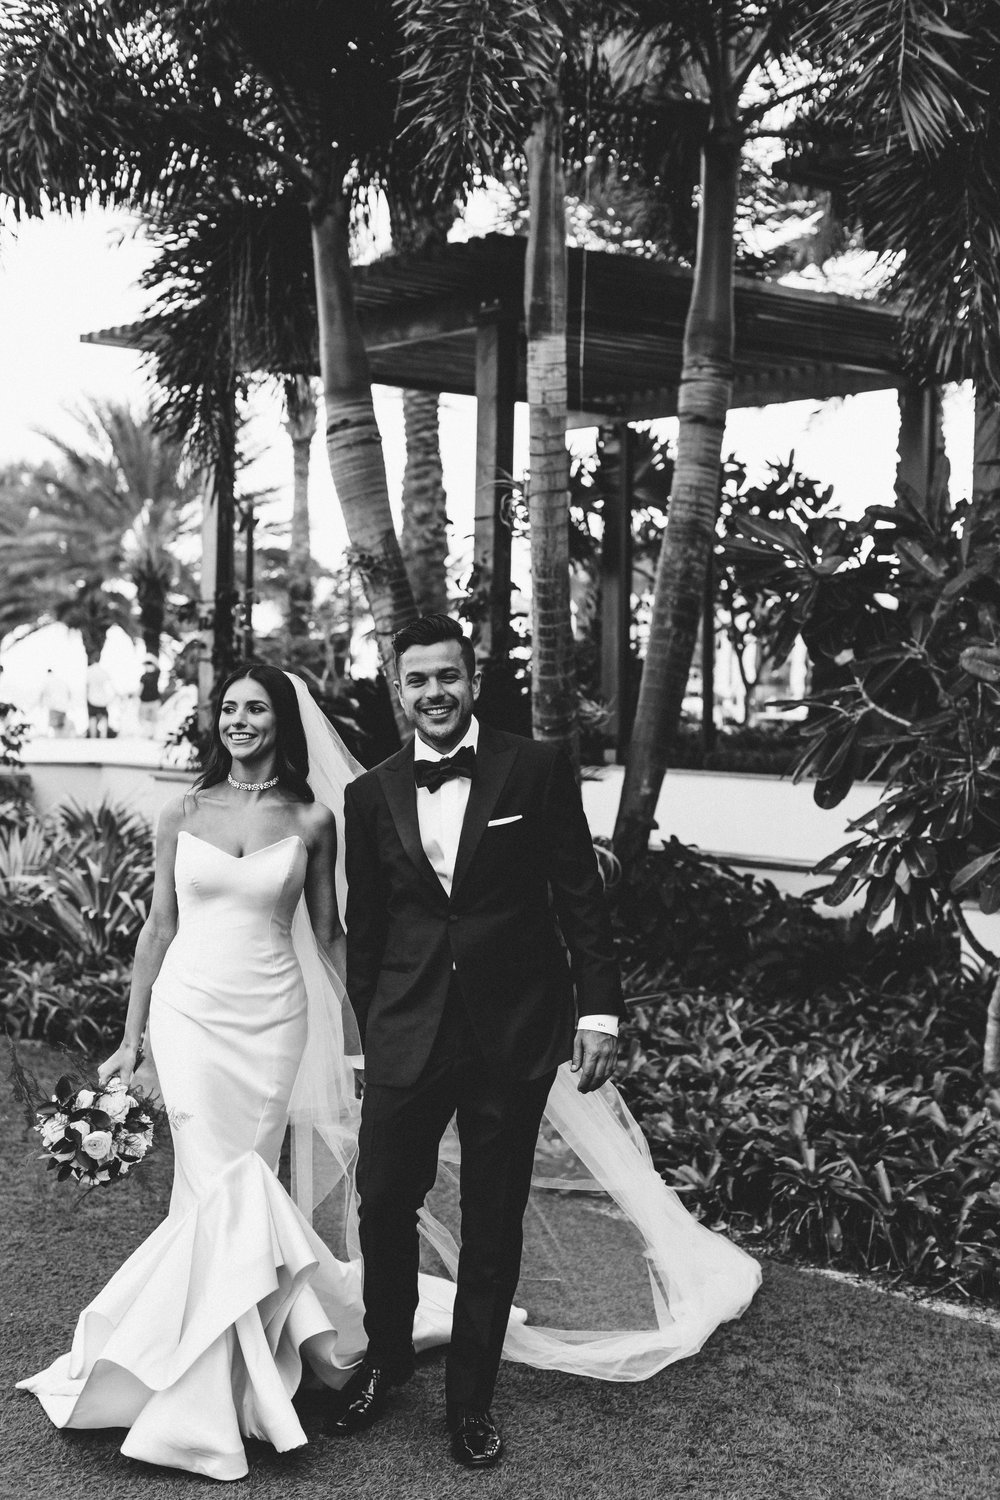 2016_12_16_NATALIE_GREG_LEBESS_WEDDING-277.jpg